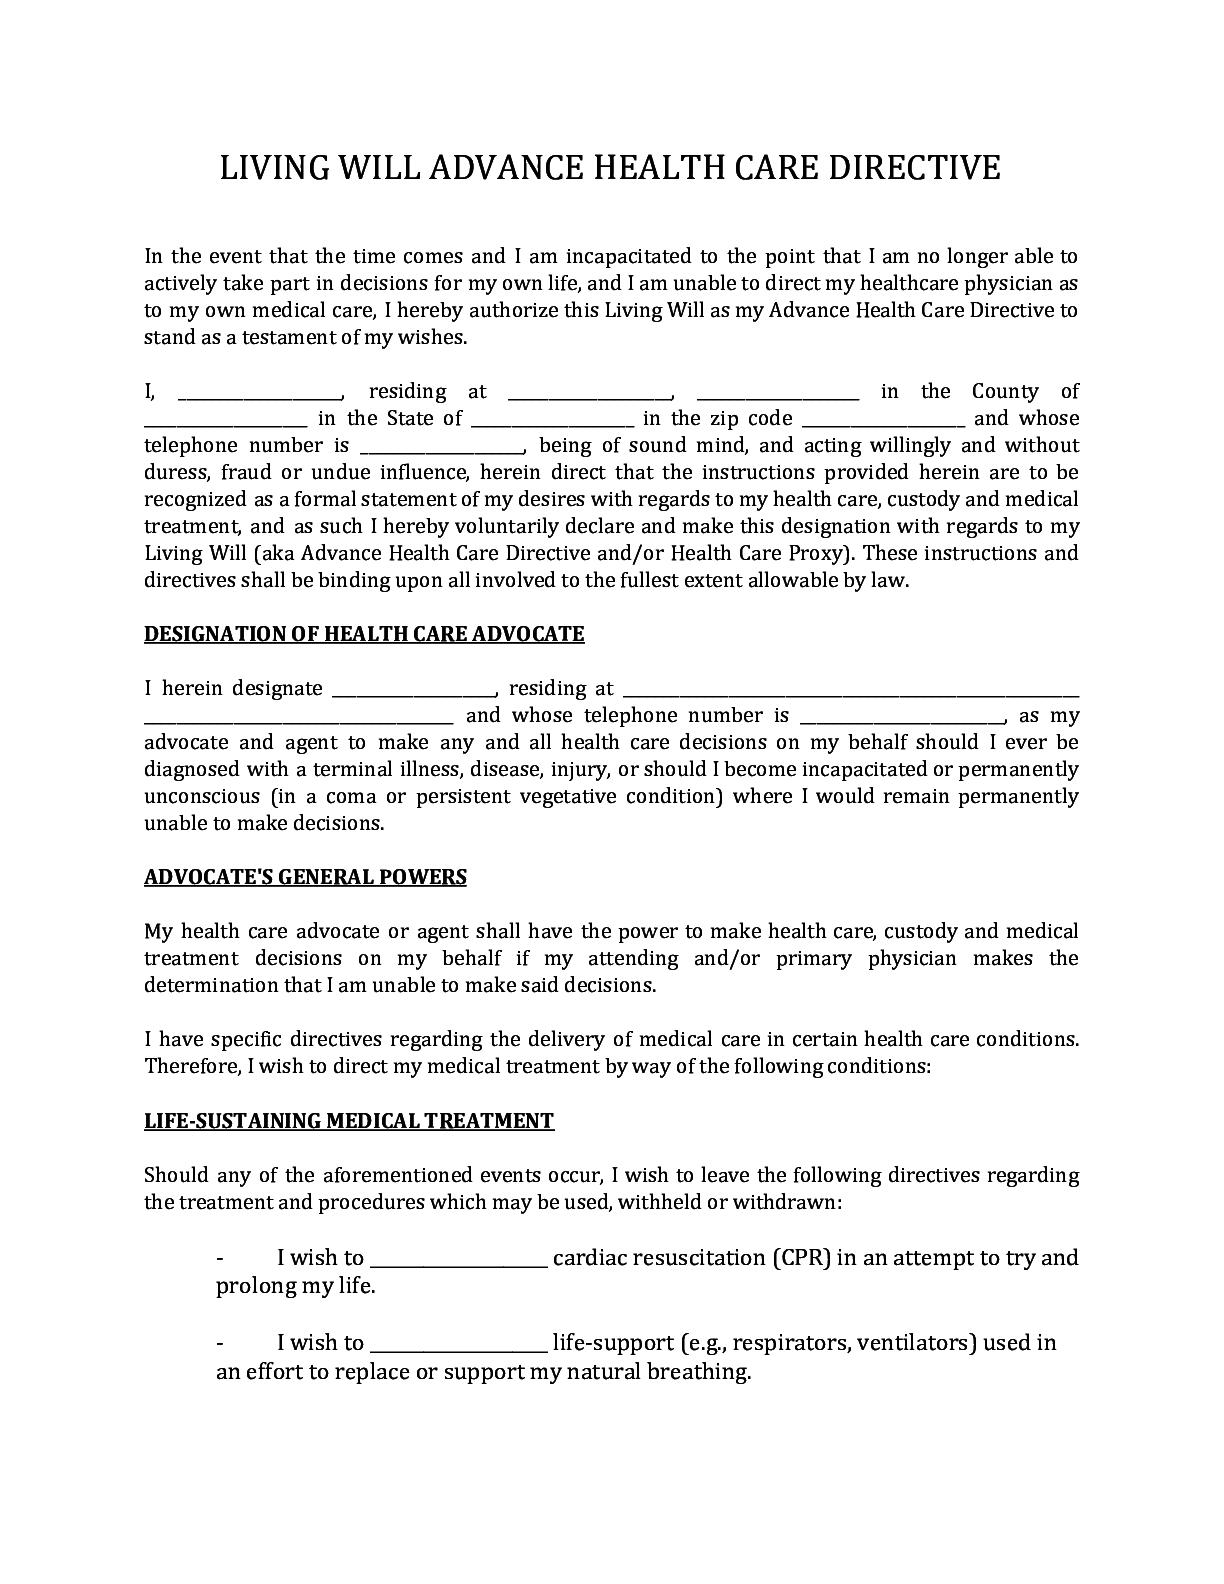 Virginia Living Will Form Fillable Pdf Template